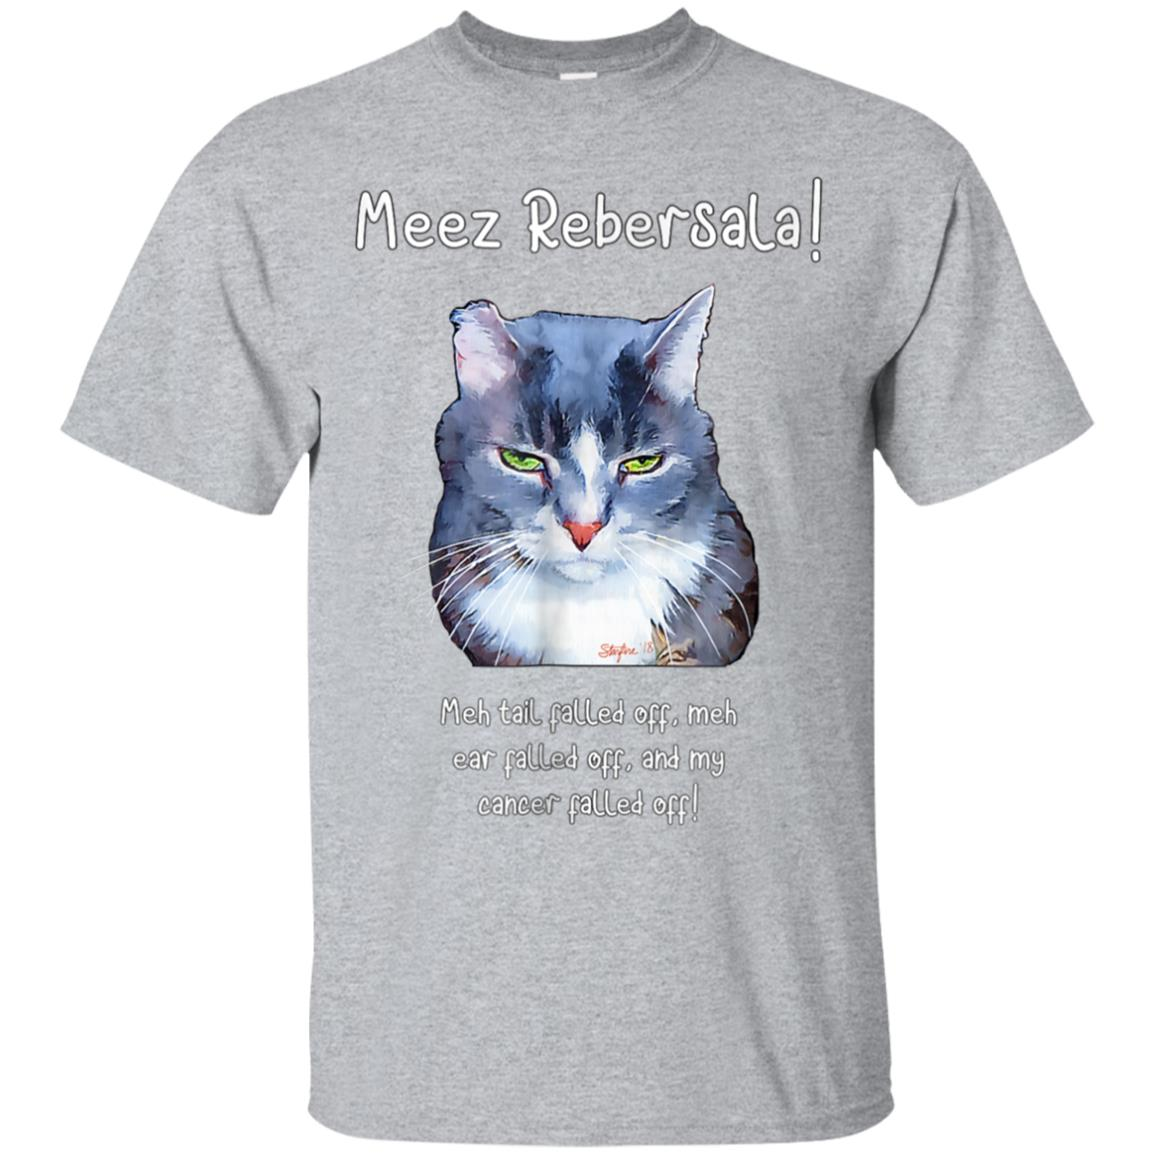 Meez Rebersala! Adorable Cancer-fighting Kitty T-Shirt 99promocode